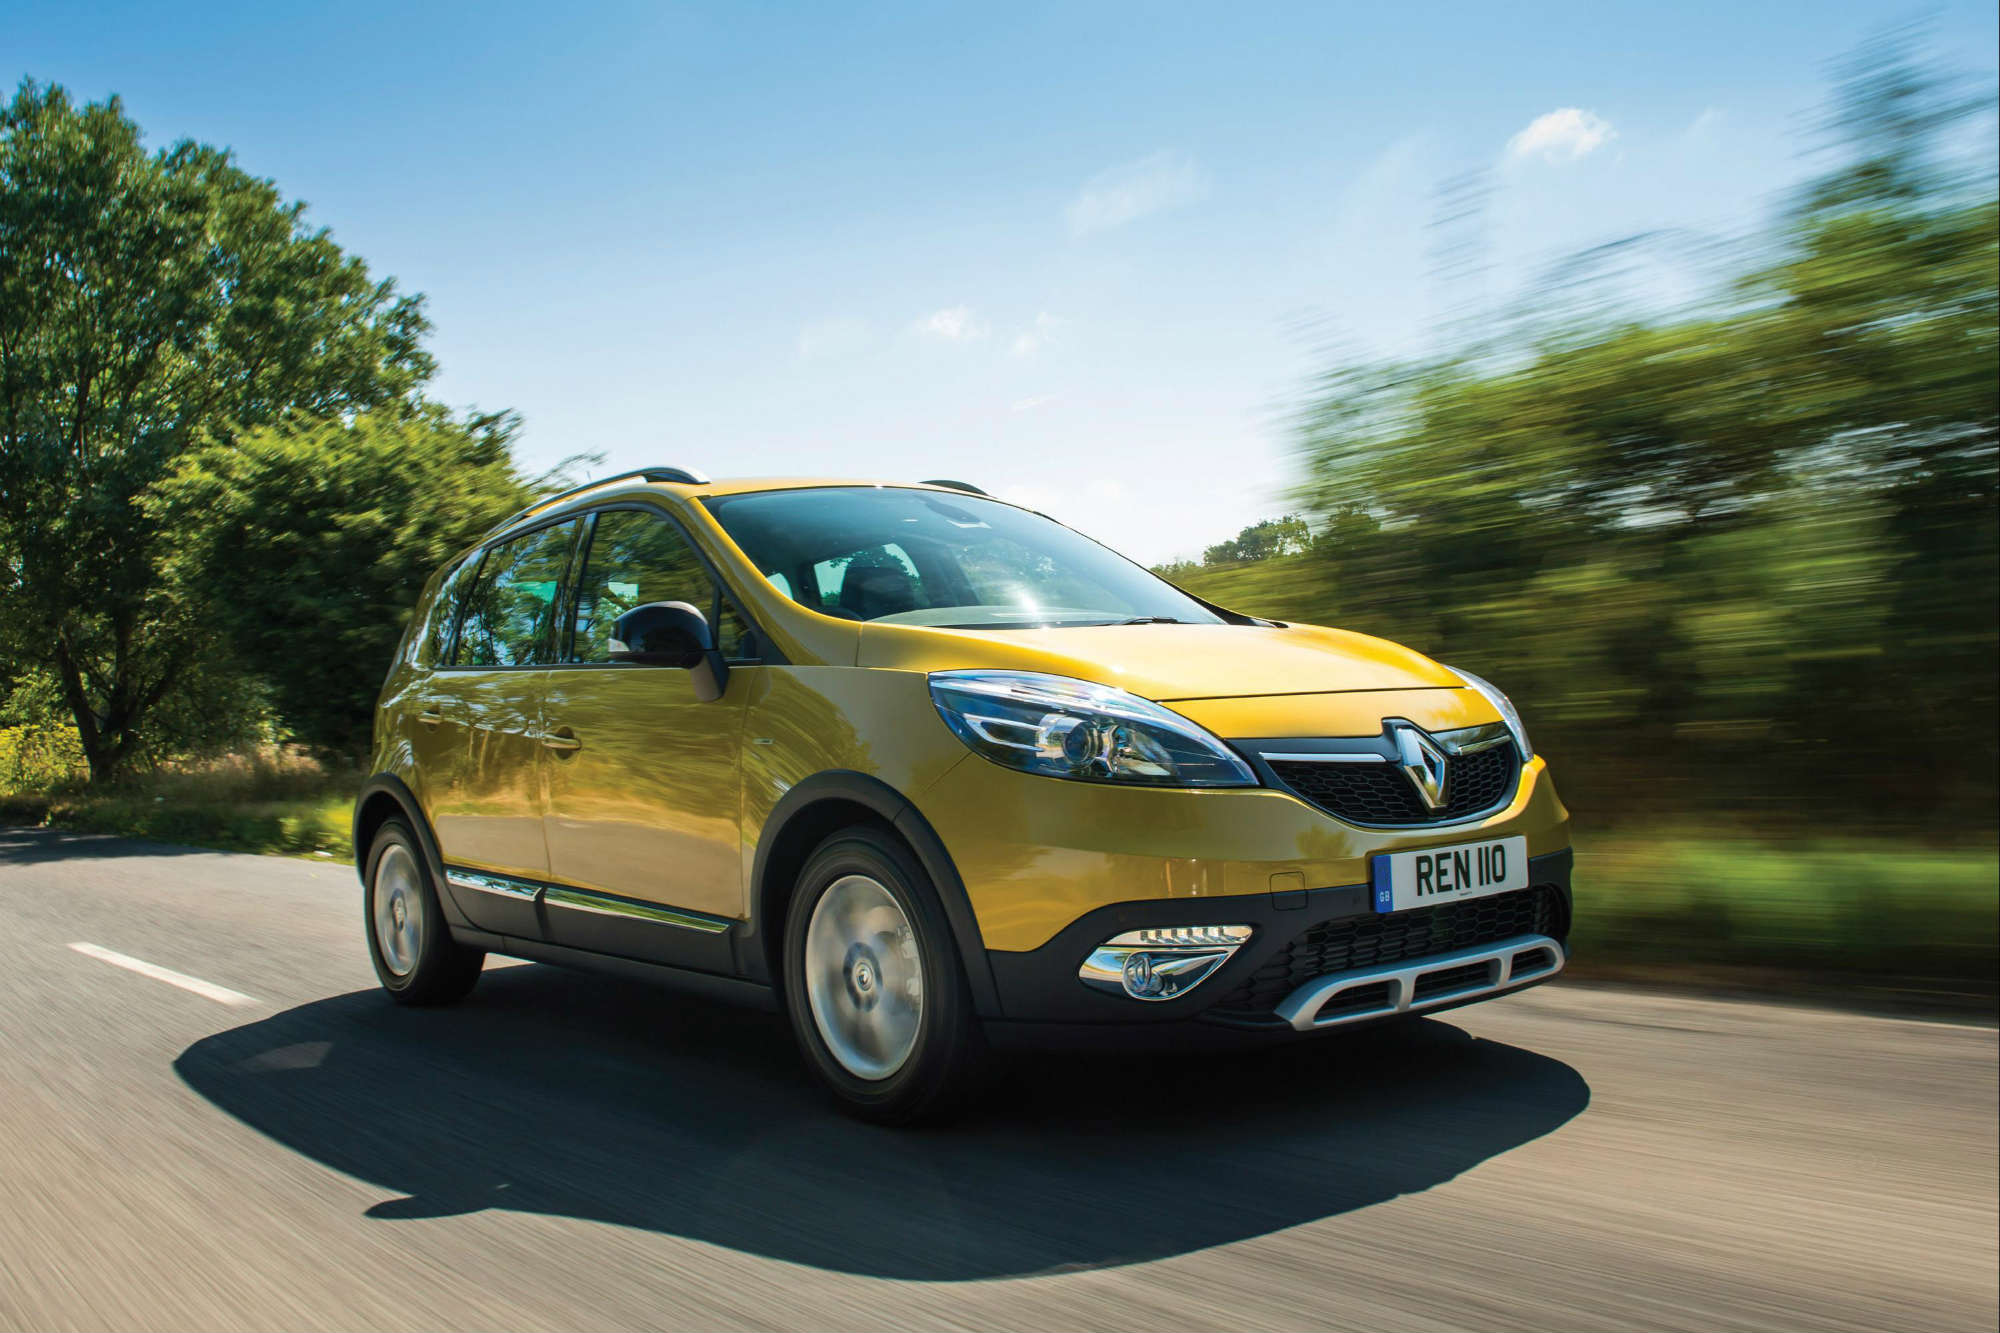 renault scenic xmod mpv review car keys. Black Bedroom Furniture Sets. Home Design Ideas